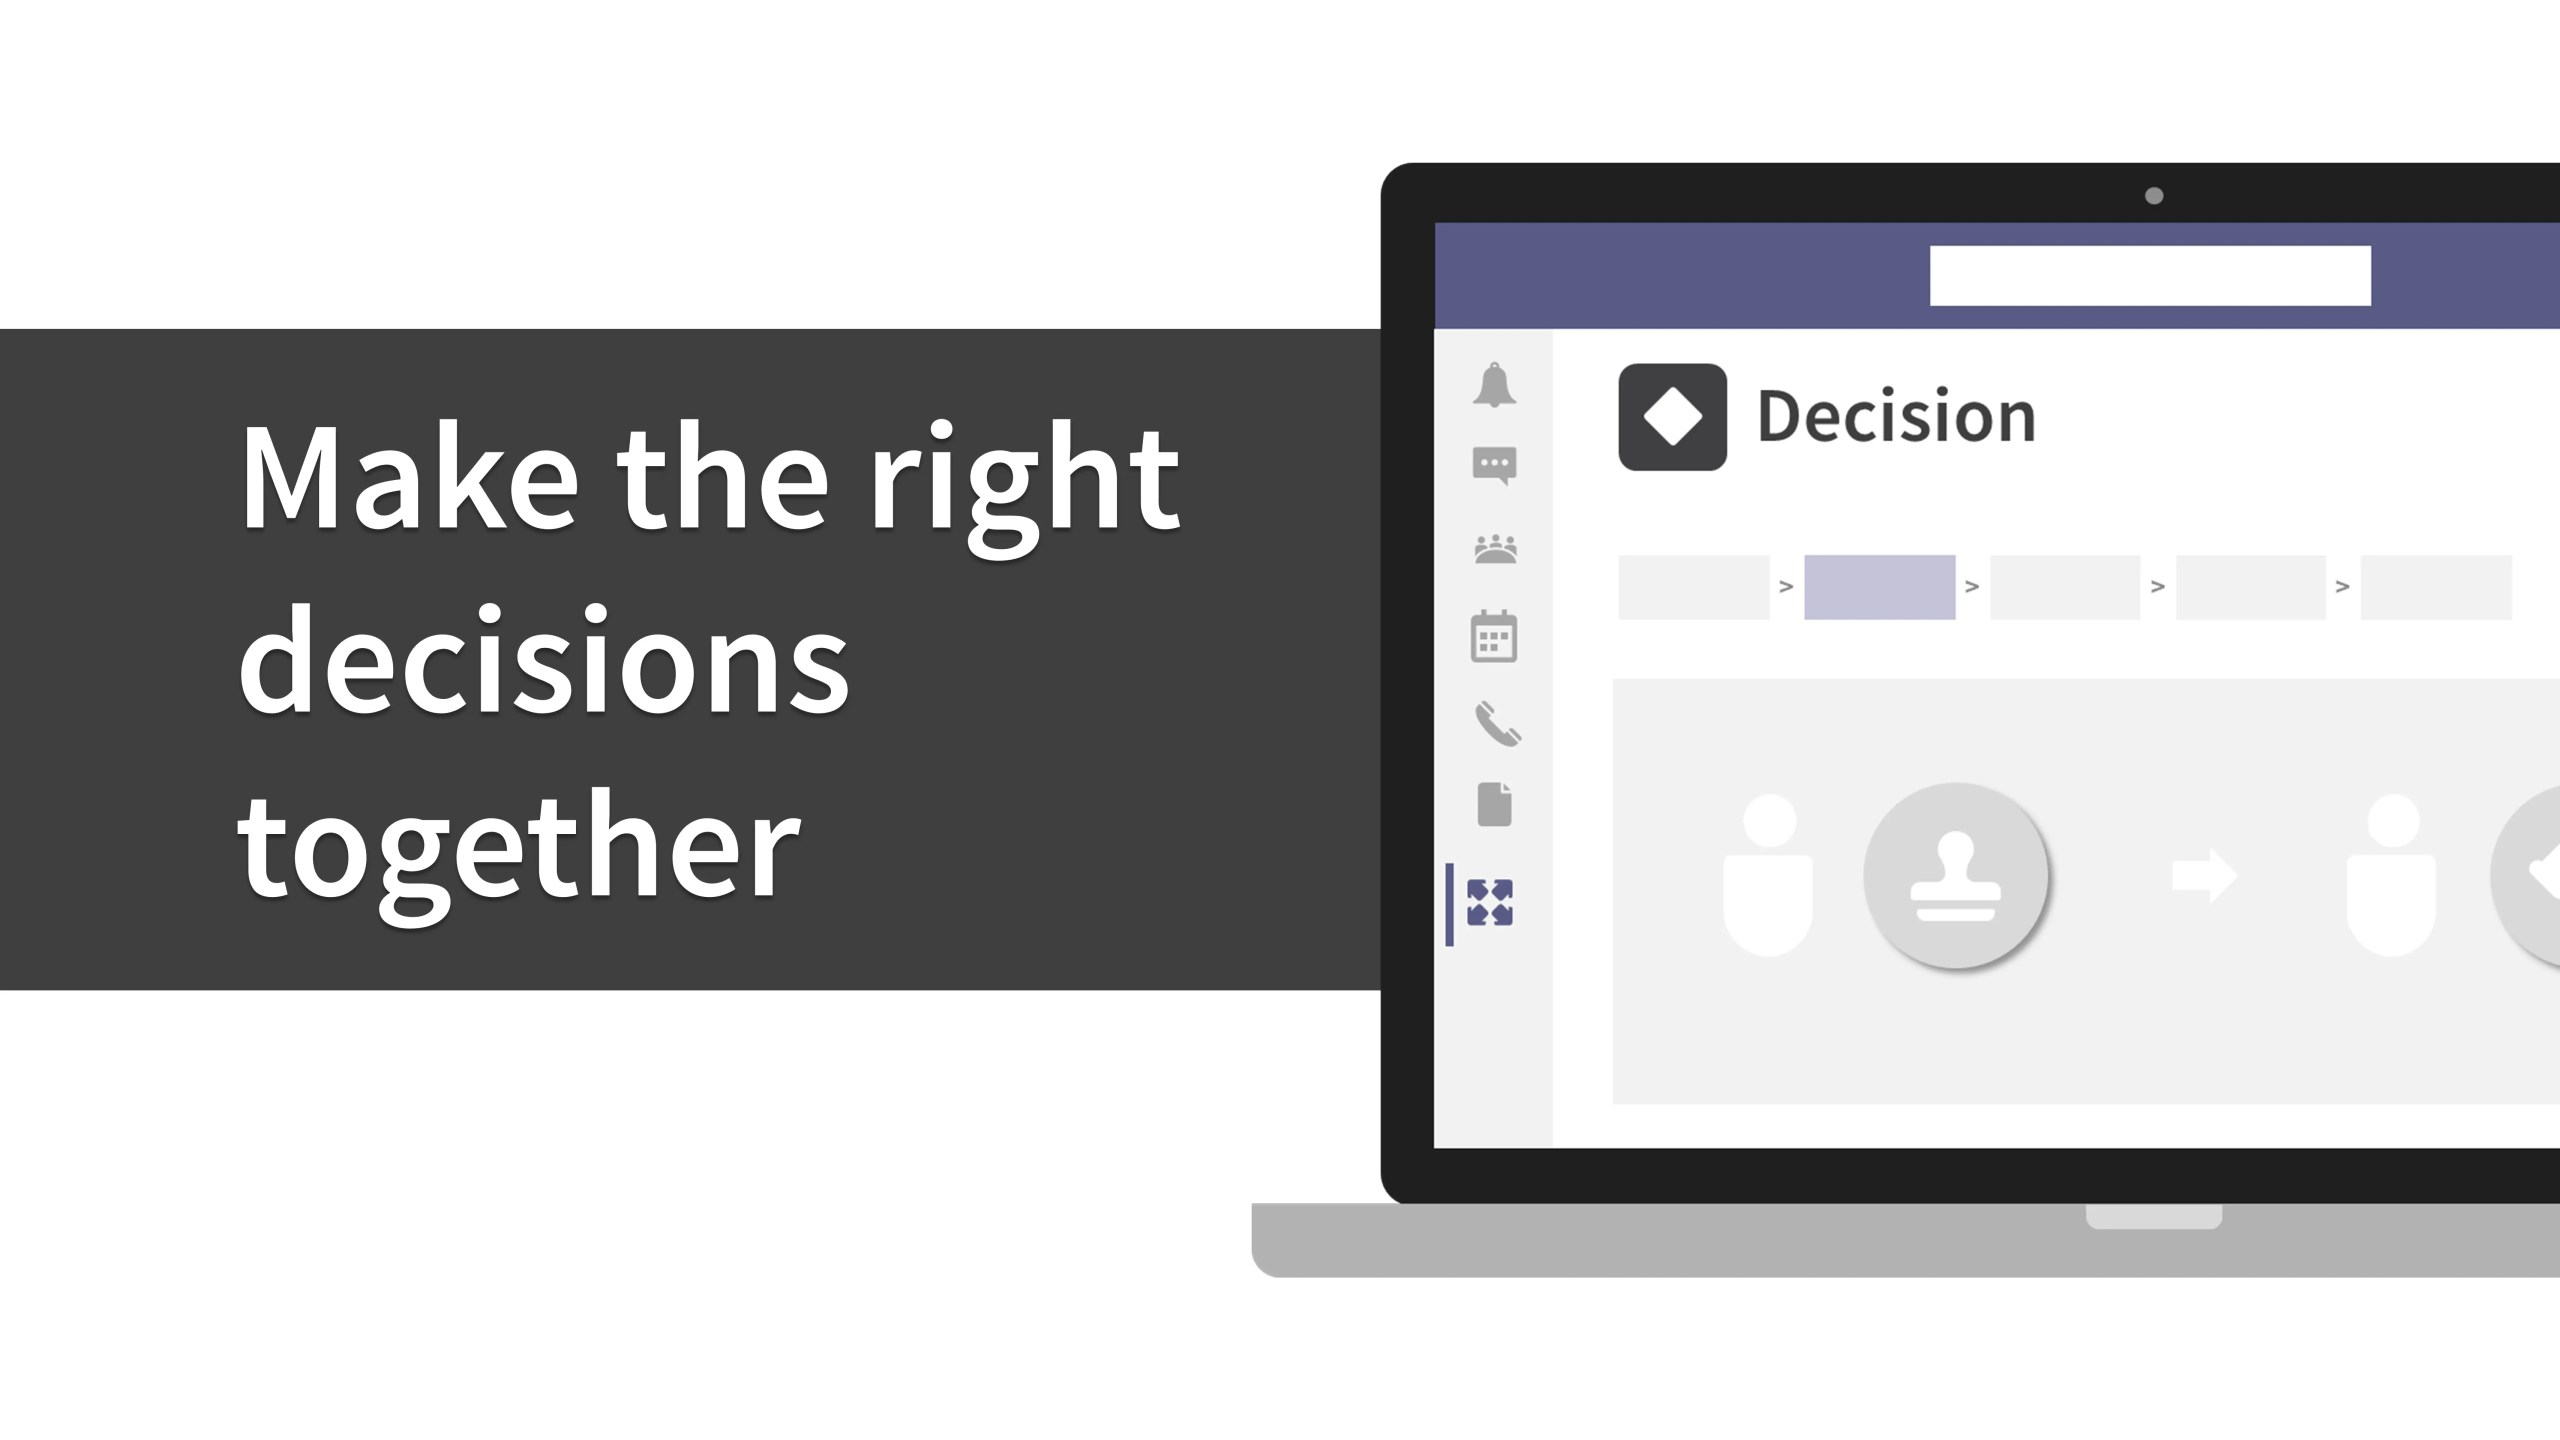 Make the right decisions together